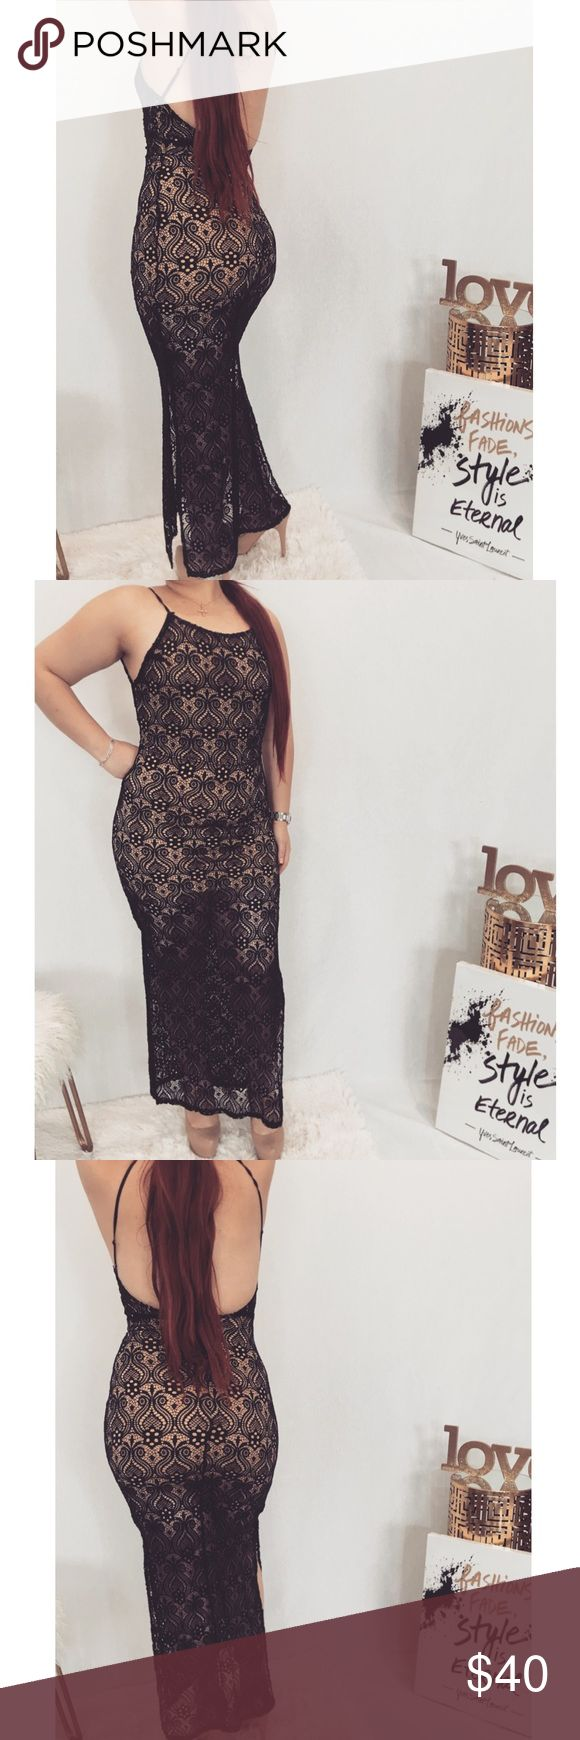 Black and Nude Long Dress Black and nude lace backless dress with nude underlay. Side Slits up to thighs. Zipper closure. Model is 5'5 size M. Fit is true to size. Styled City Boutique Dresses Maxi